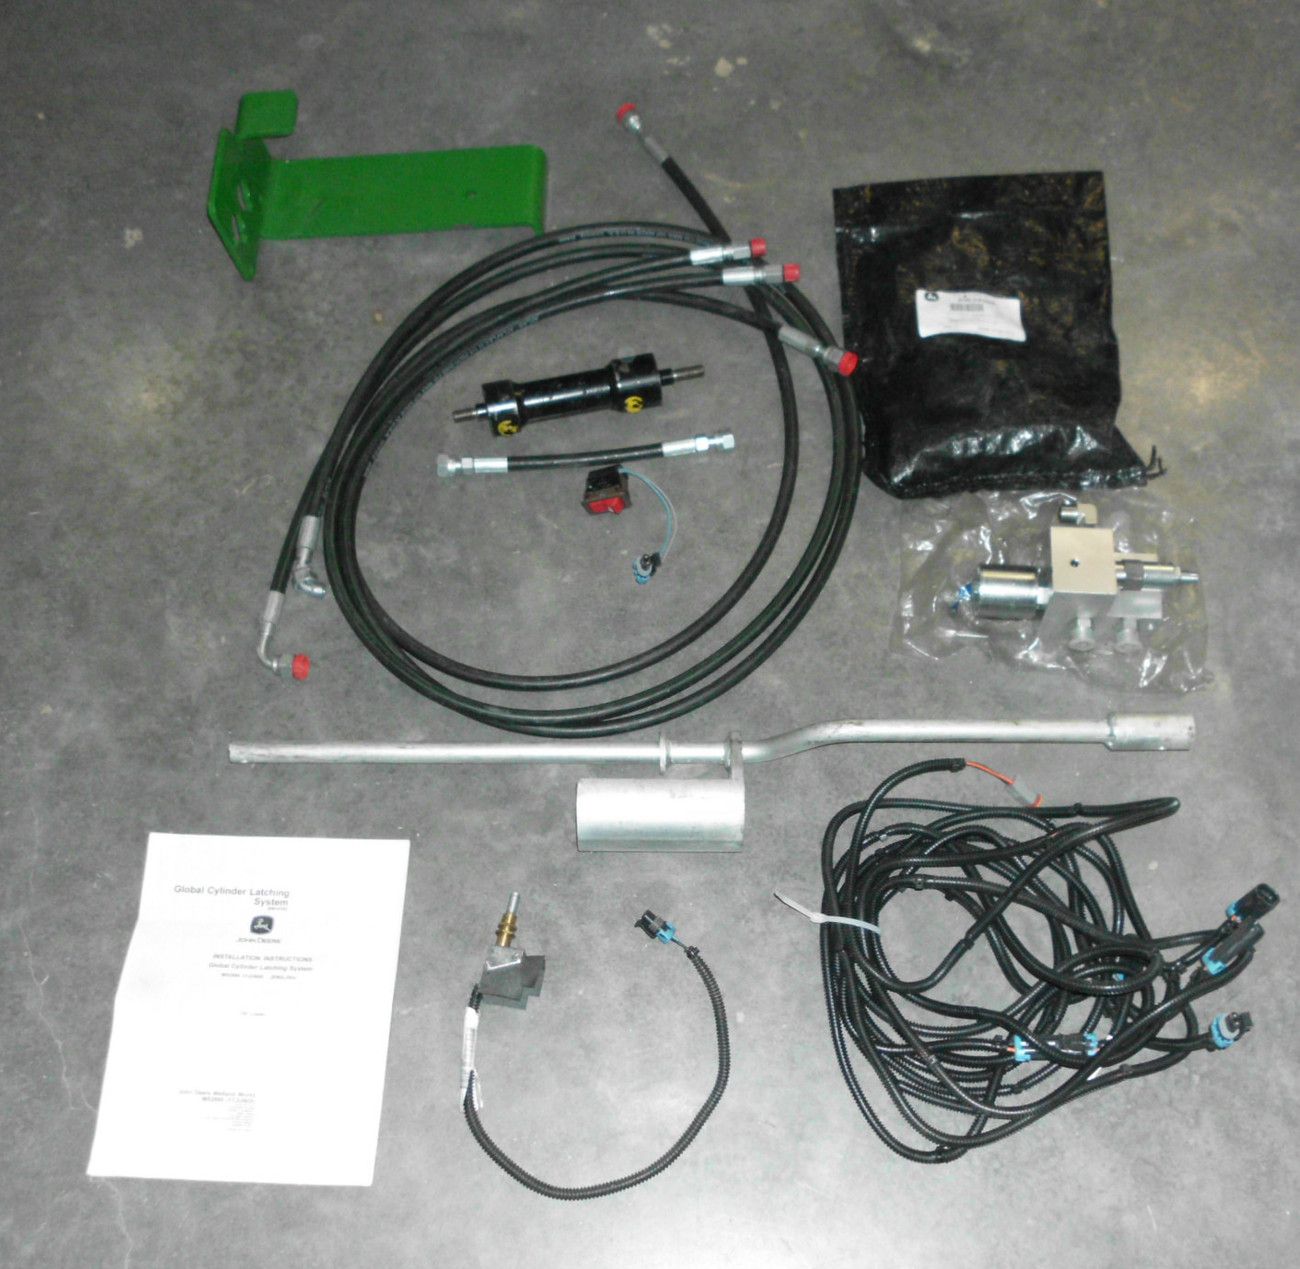 John Deere Global Cylinder Latching System Kit # BW15782 (E4)